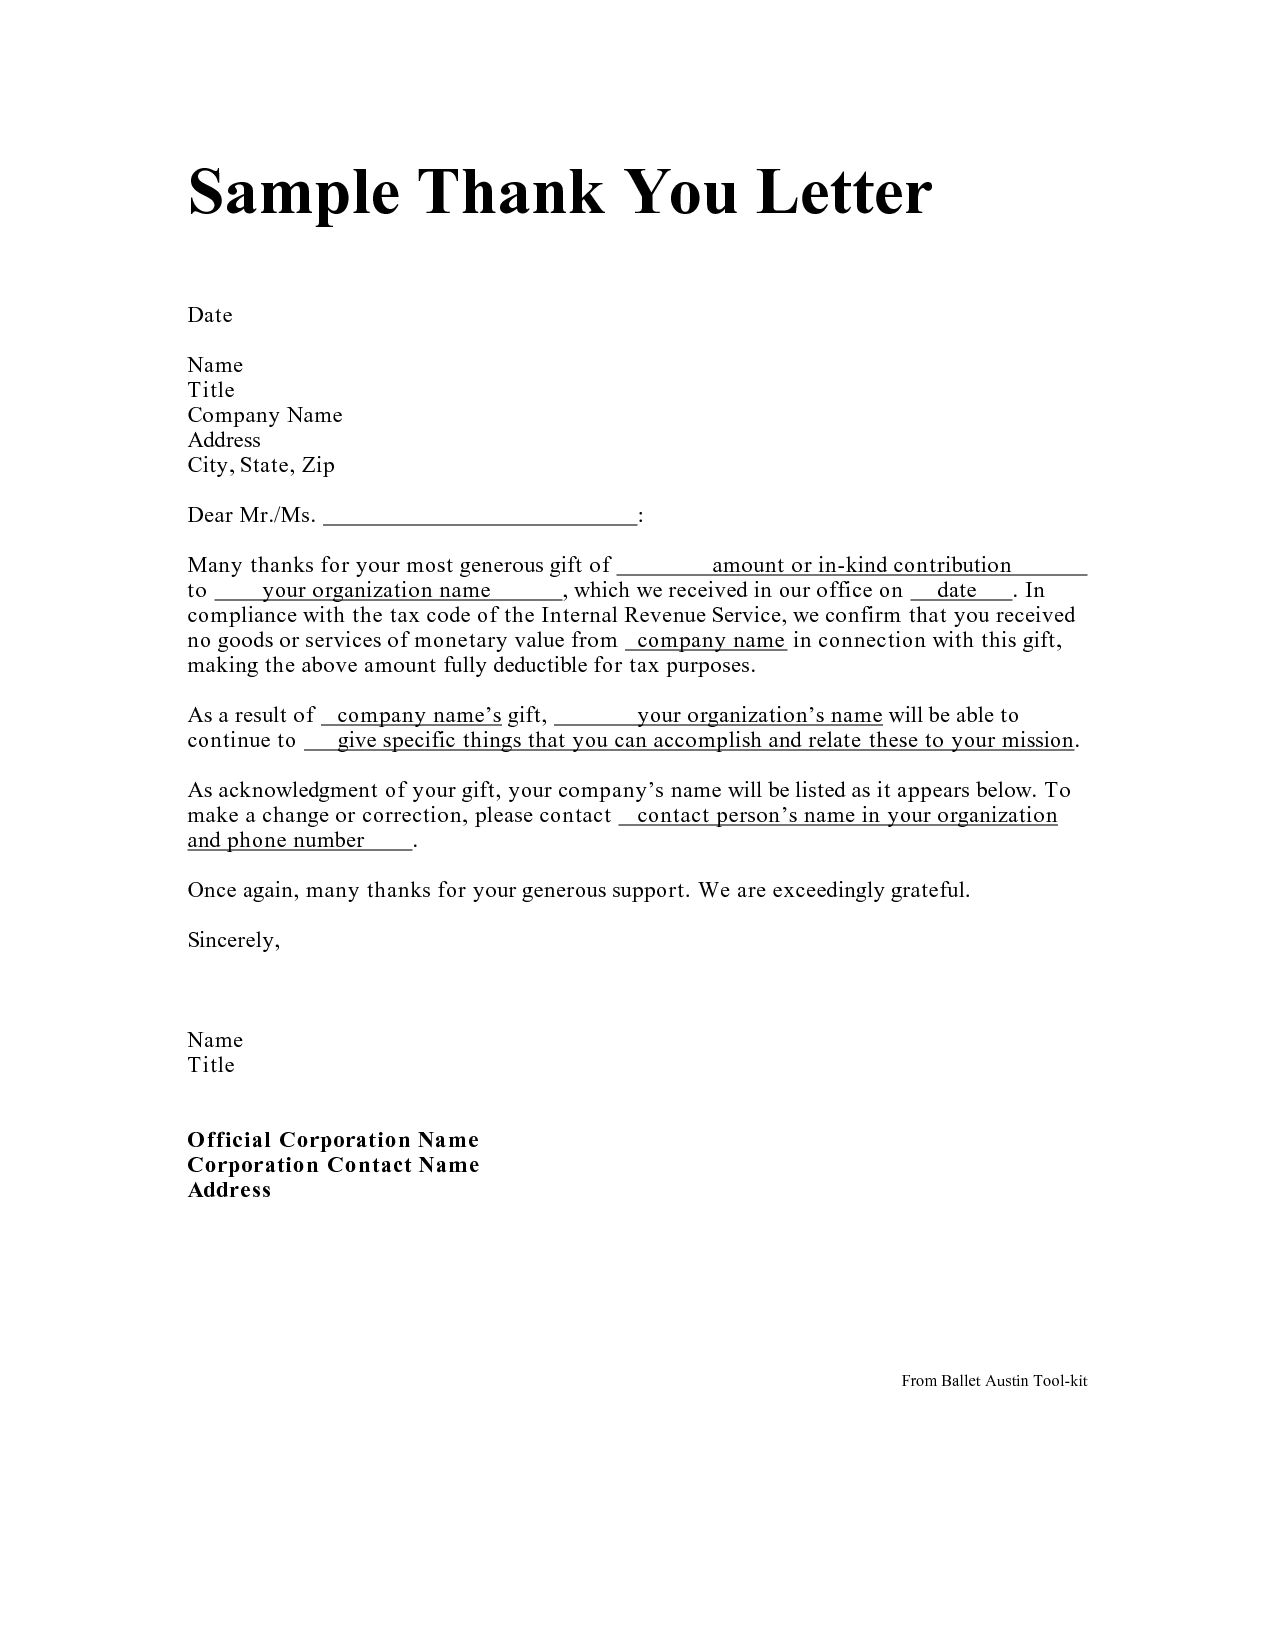 Personal thank you letter personal thank you letter samples personal thank you letter personal thank you letter samples writing thank you notes thank you note examples thecheapjerseys Image collections